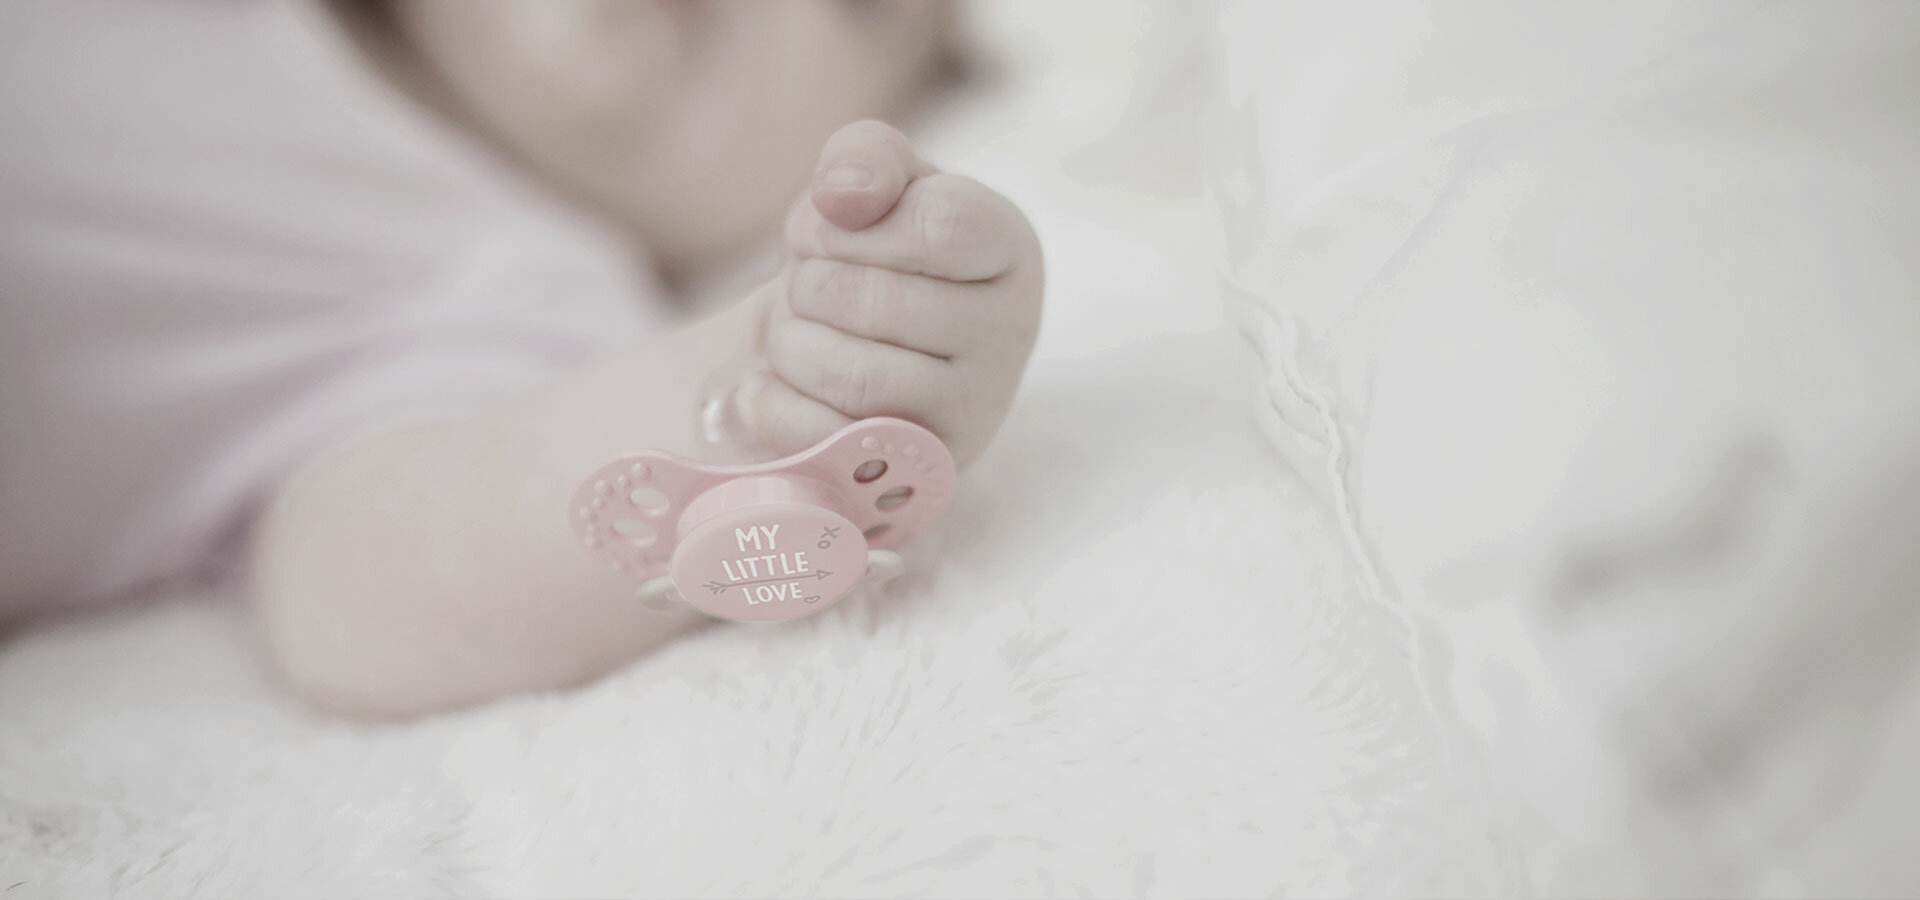 Small babys hand holding a pink mini soother